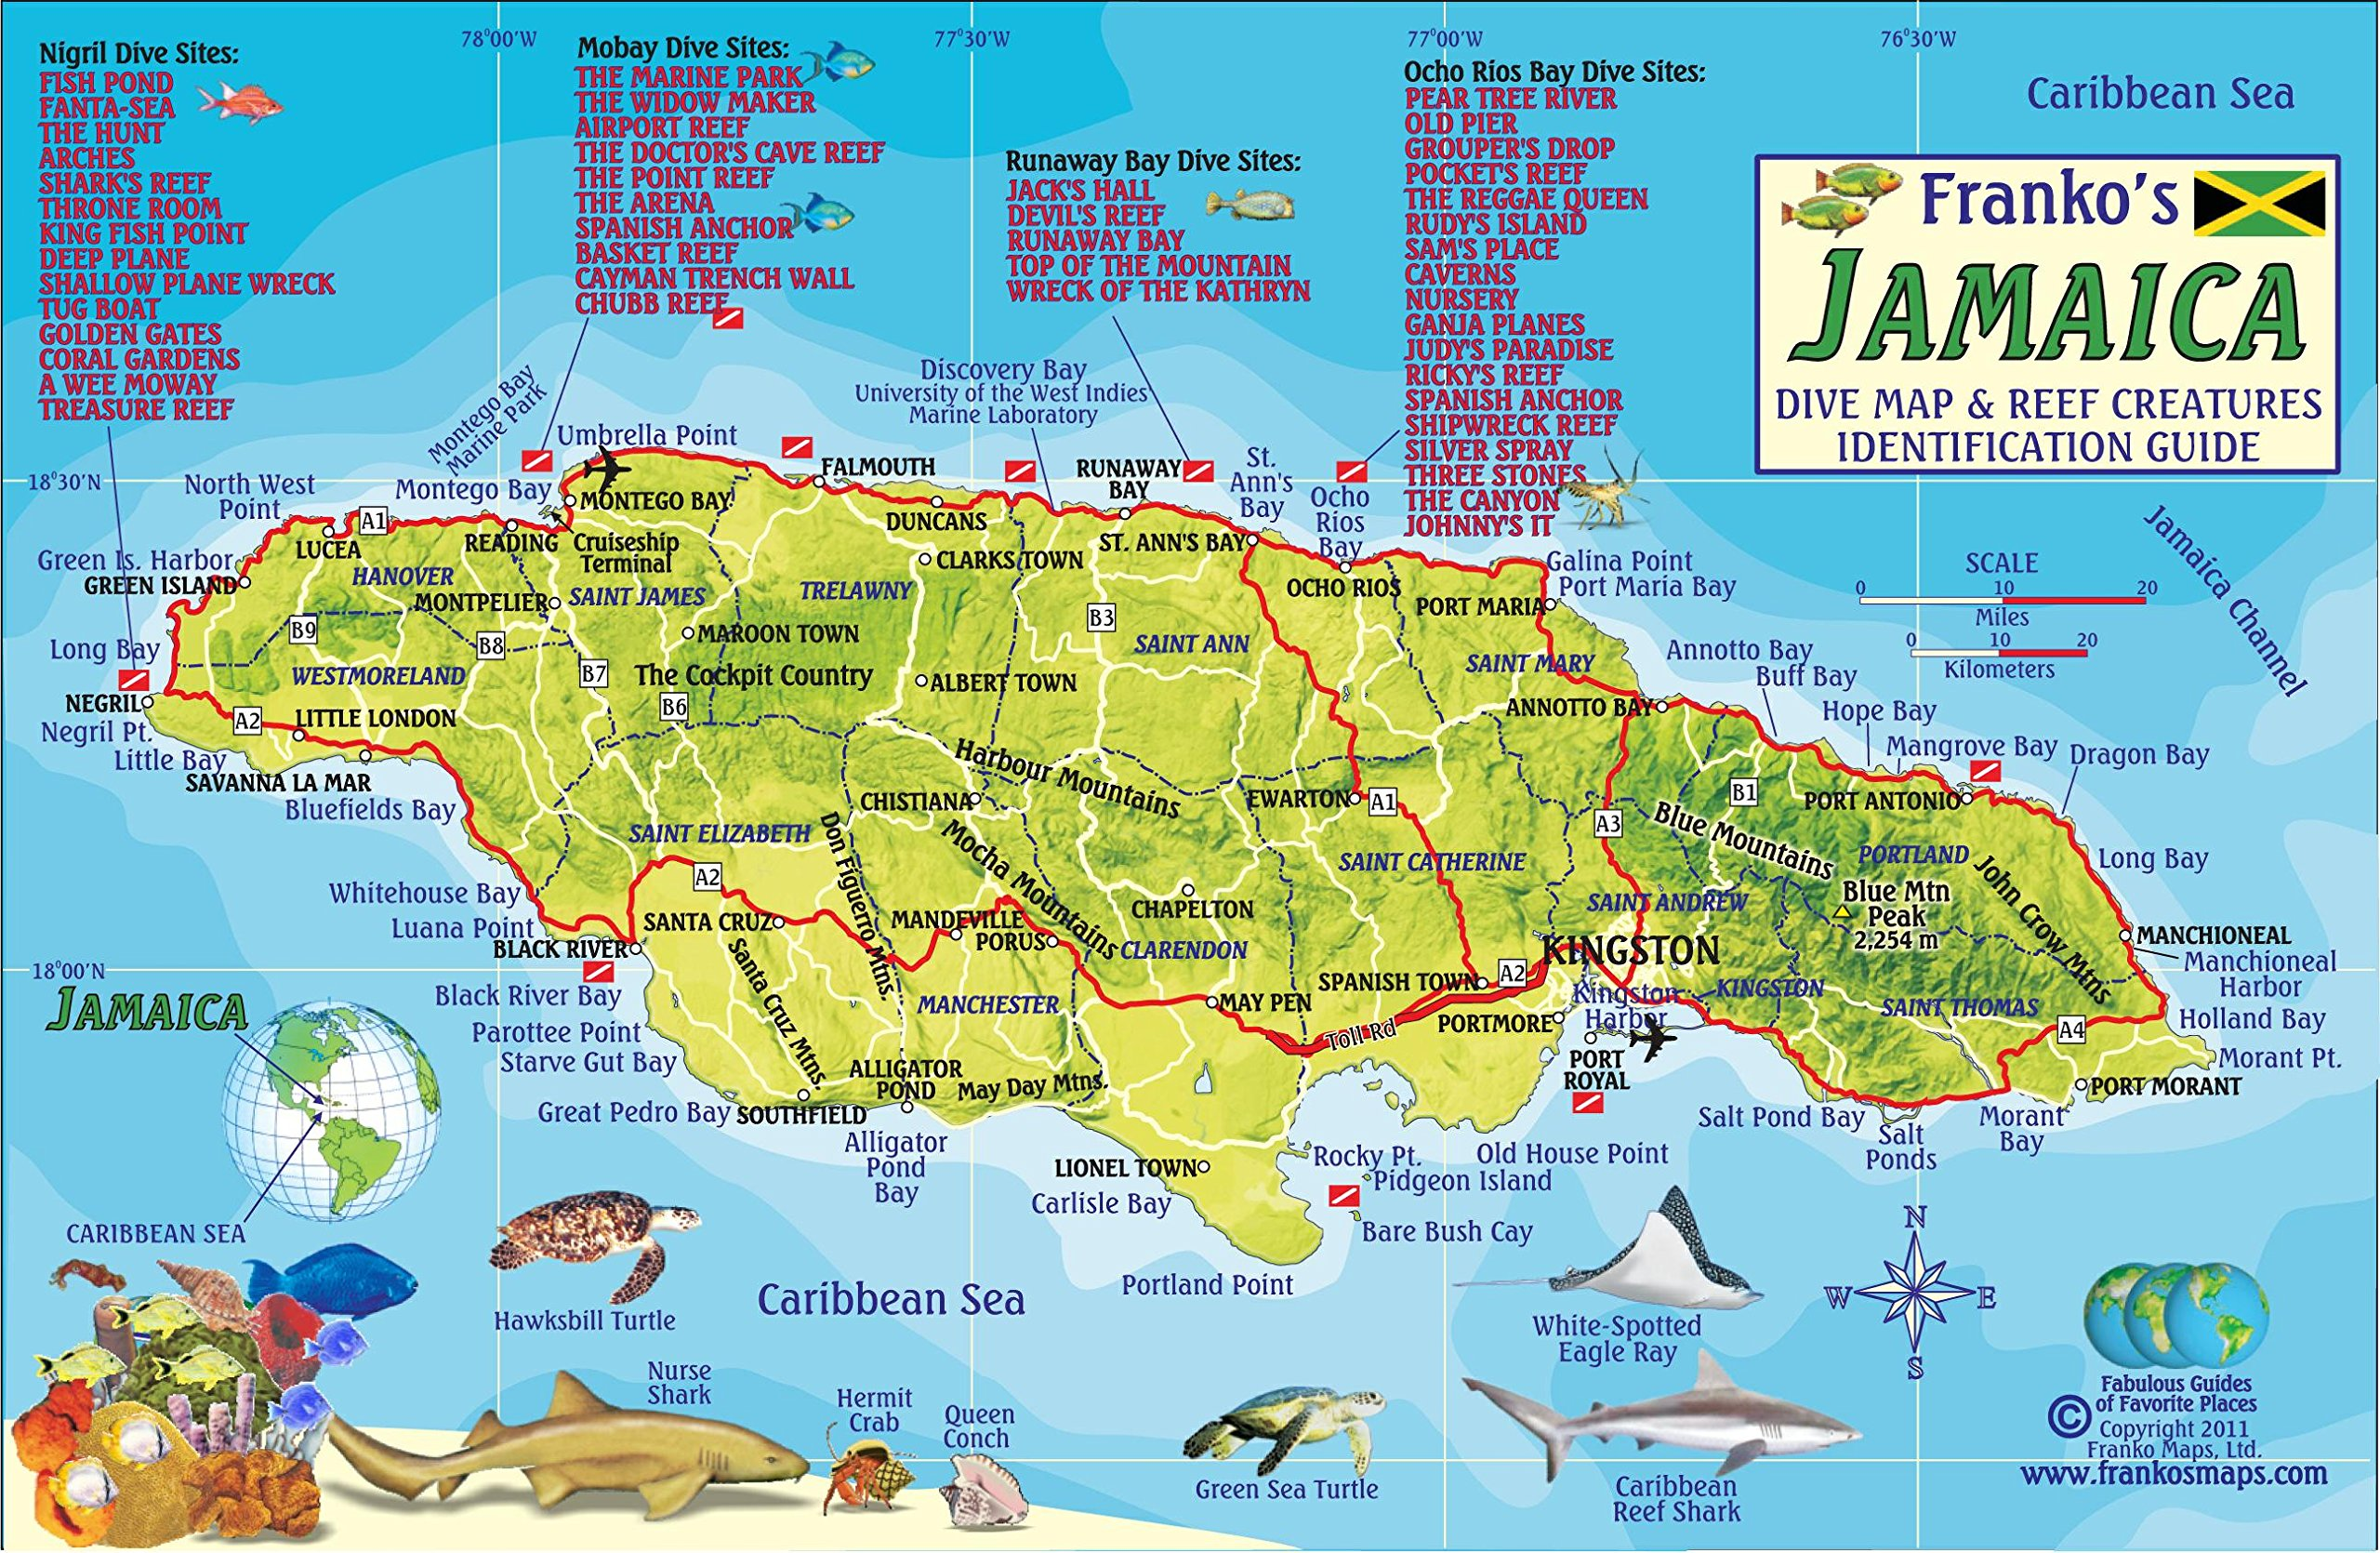 jamaica dive map  coral reef creatures guide franko maps laminated fishcard franko maps ltd  amazoncom books. jamaica dive map  coral reef creatures guide franko maps